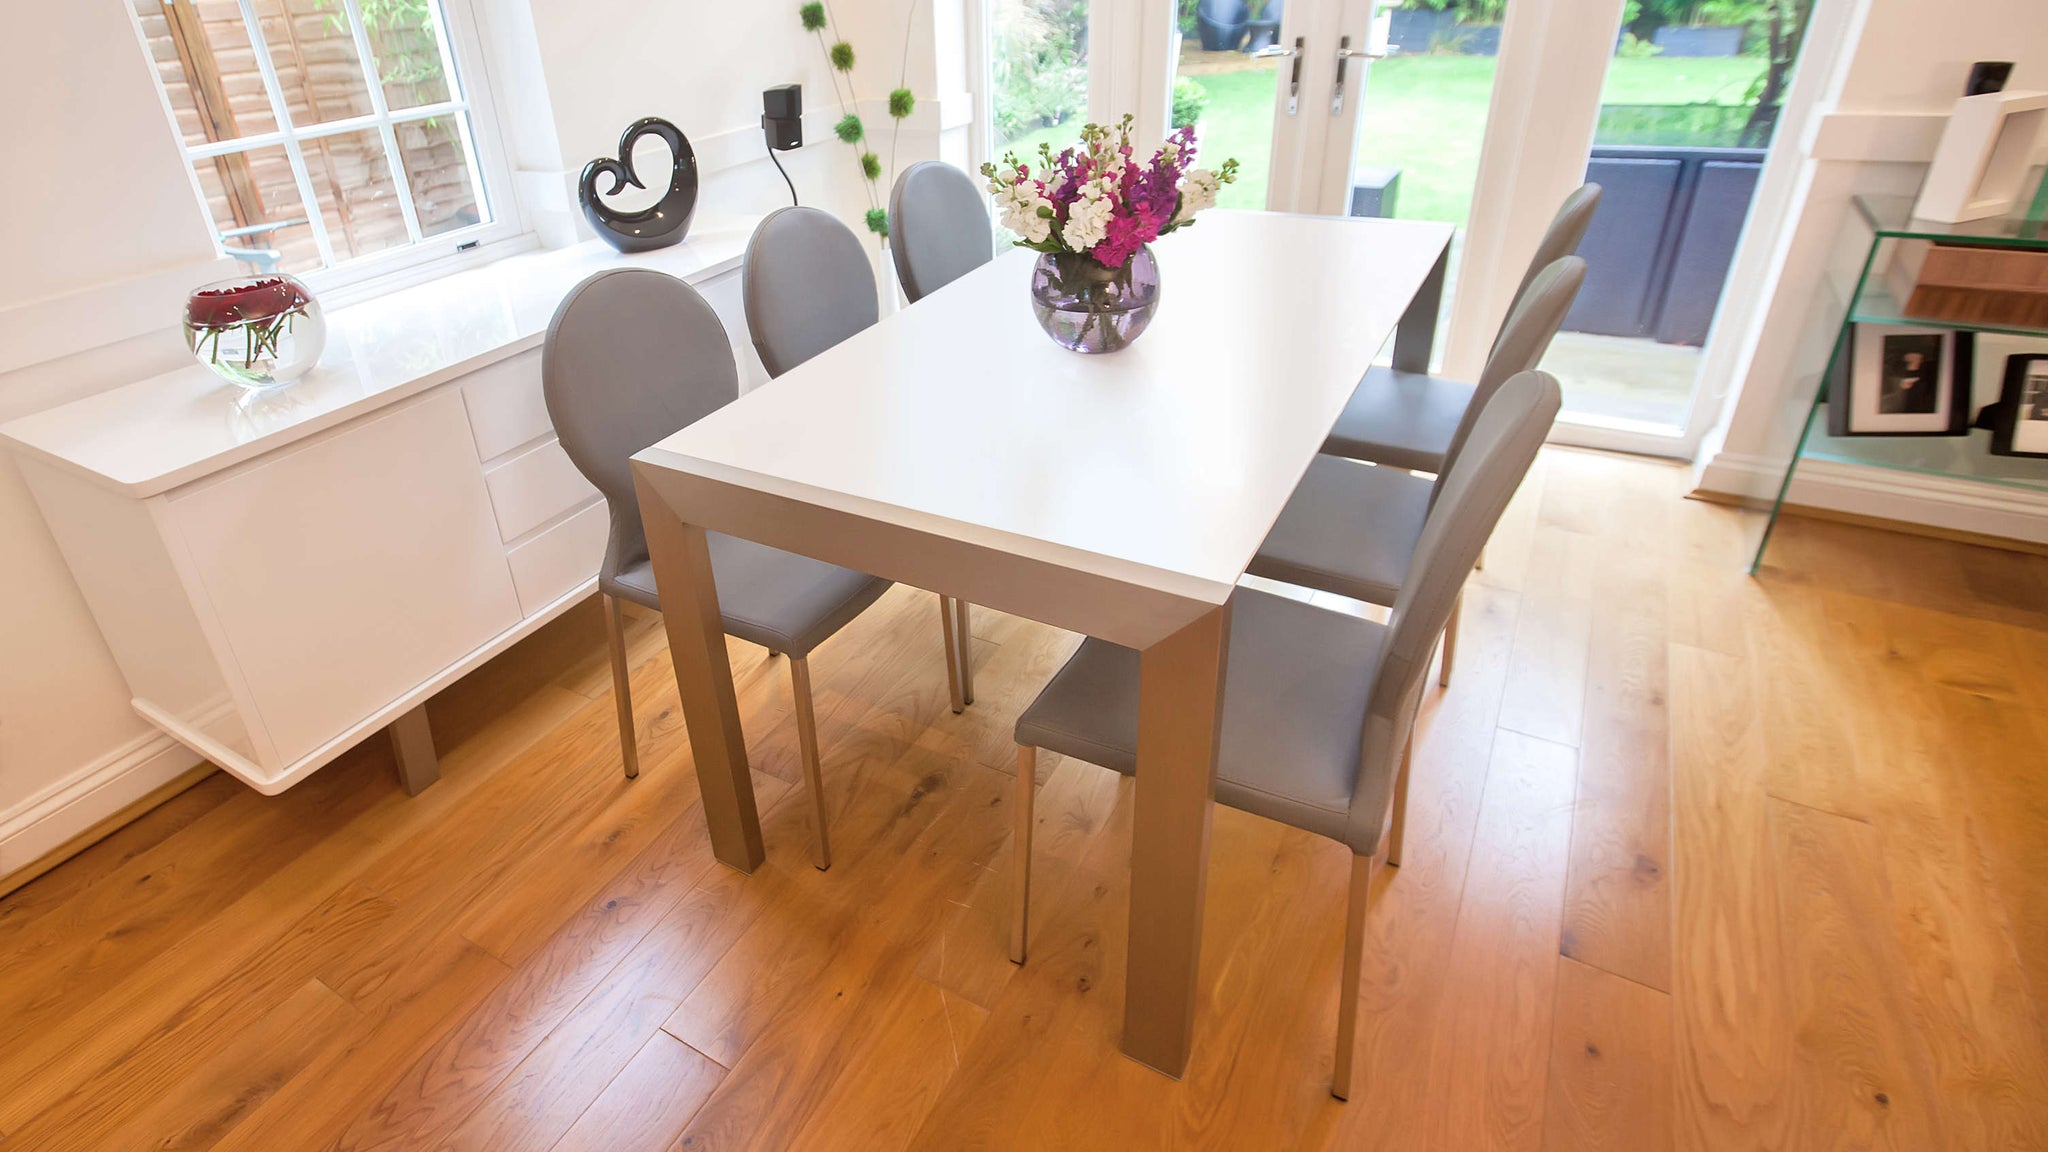 4-8 Seater Dining Table and Grey Faux Leather Dining Chairs